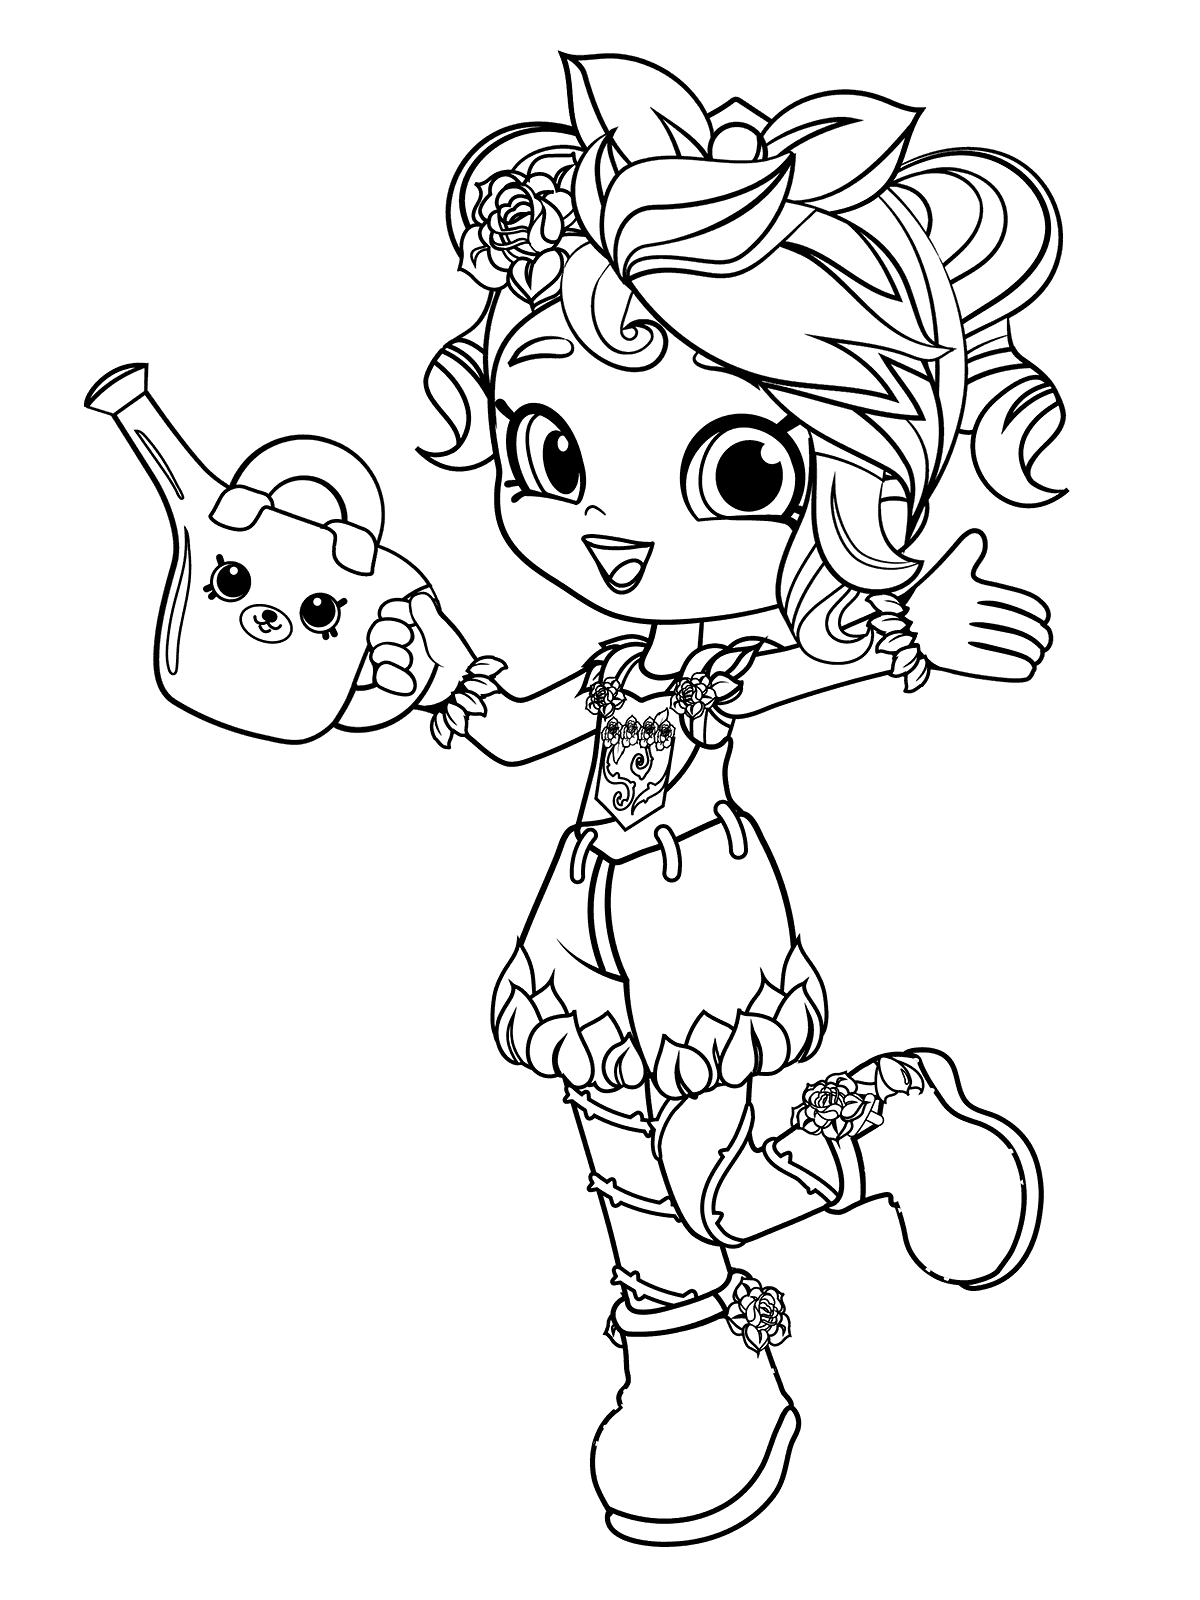 Rosie Bloom Shoppies Coloring page